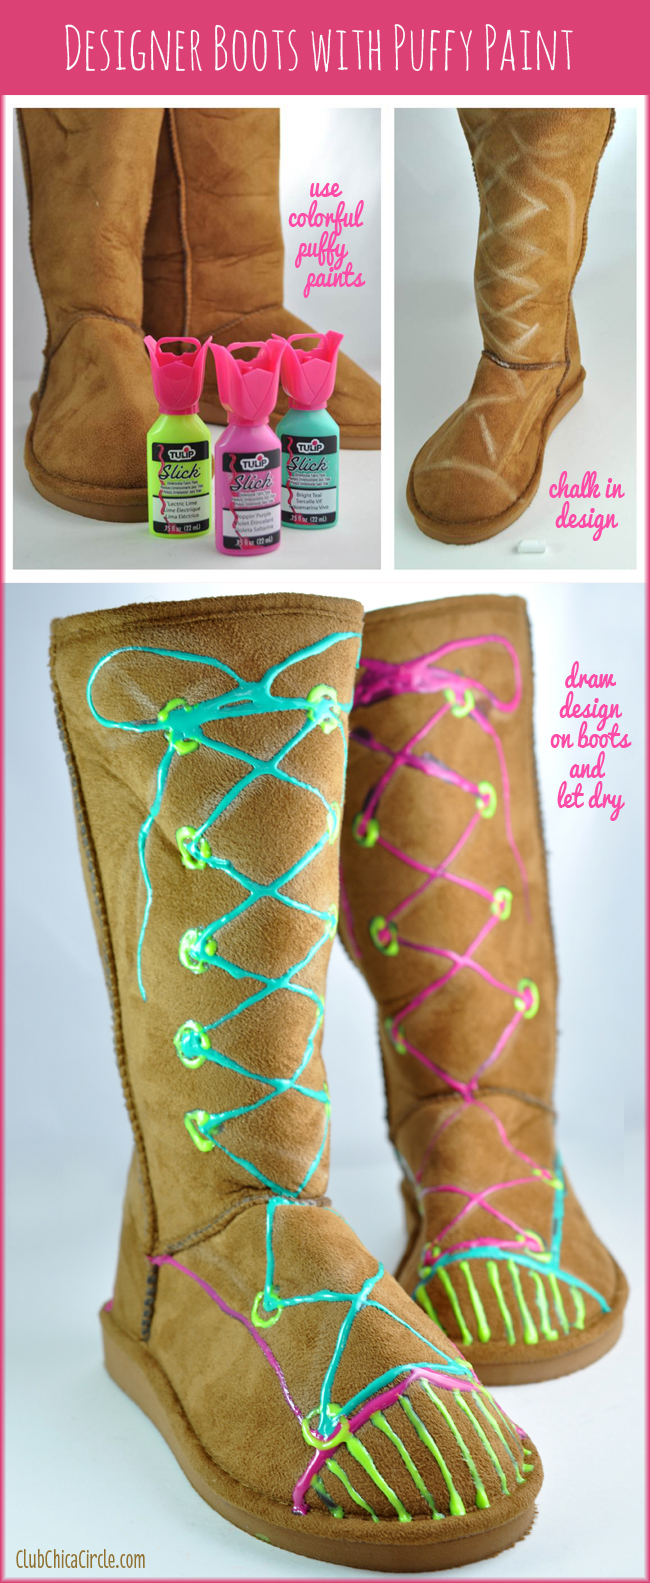 How to Design Your Own Ugg Style Boots with Puffy Paint